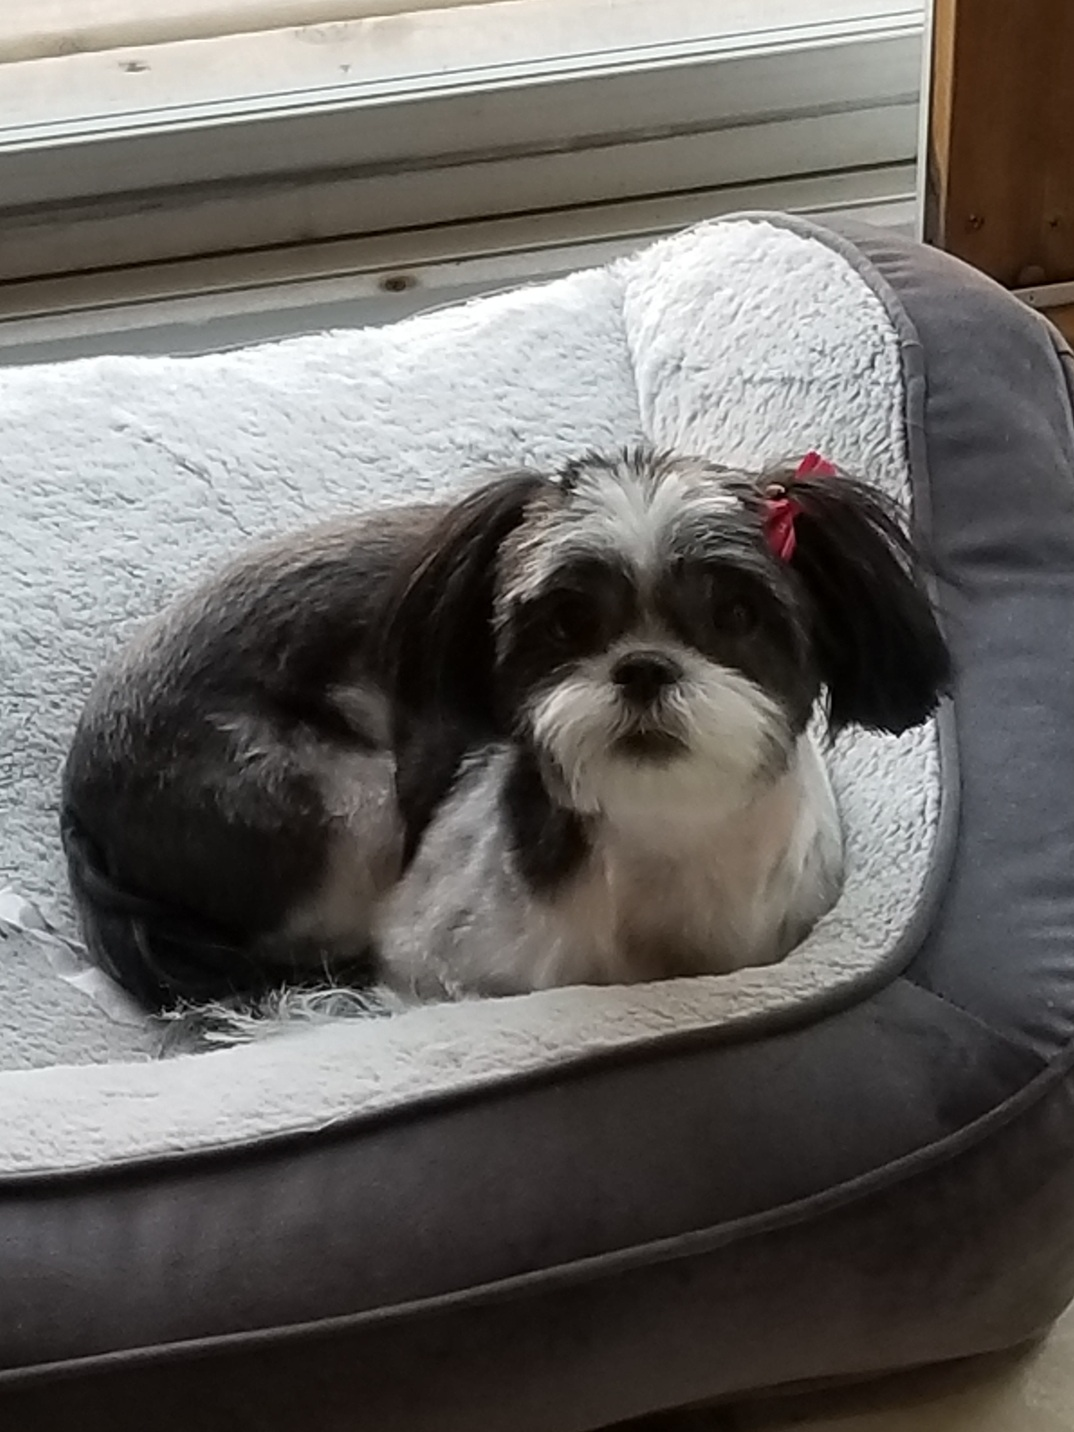 If you're looking for a young dog that is beyond the puppy stages, look no further! Sochi is a 5 year old Shi Tzu mix that would love a home of her own. She loves everyone she meets, but does have some anxiety around small children and other dogs. Sochi would do well as an only dog or with a calm, confident dog to learn from. Sochi is pee pad trained, spayed, microchipped, and up to date on all vaccines.   Contact us  to learn more!